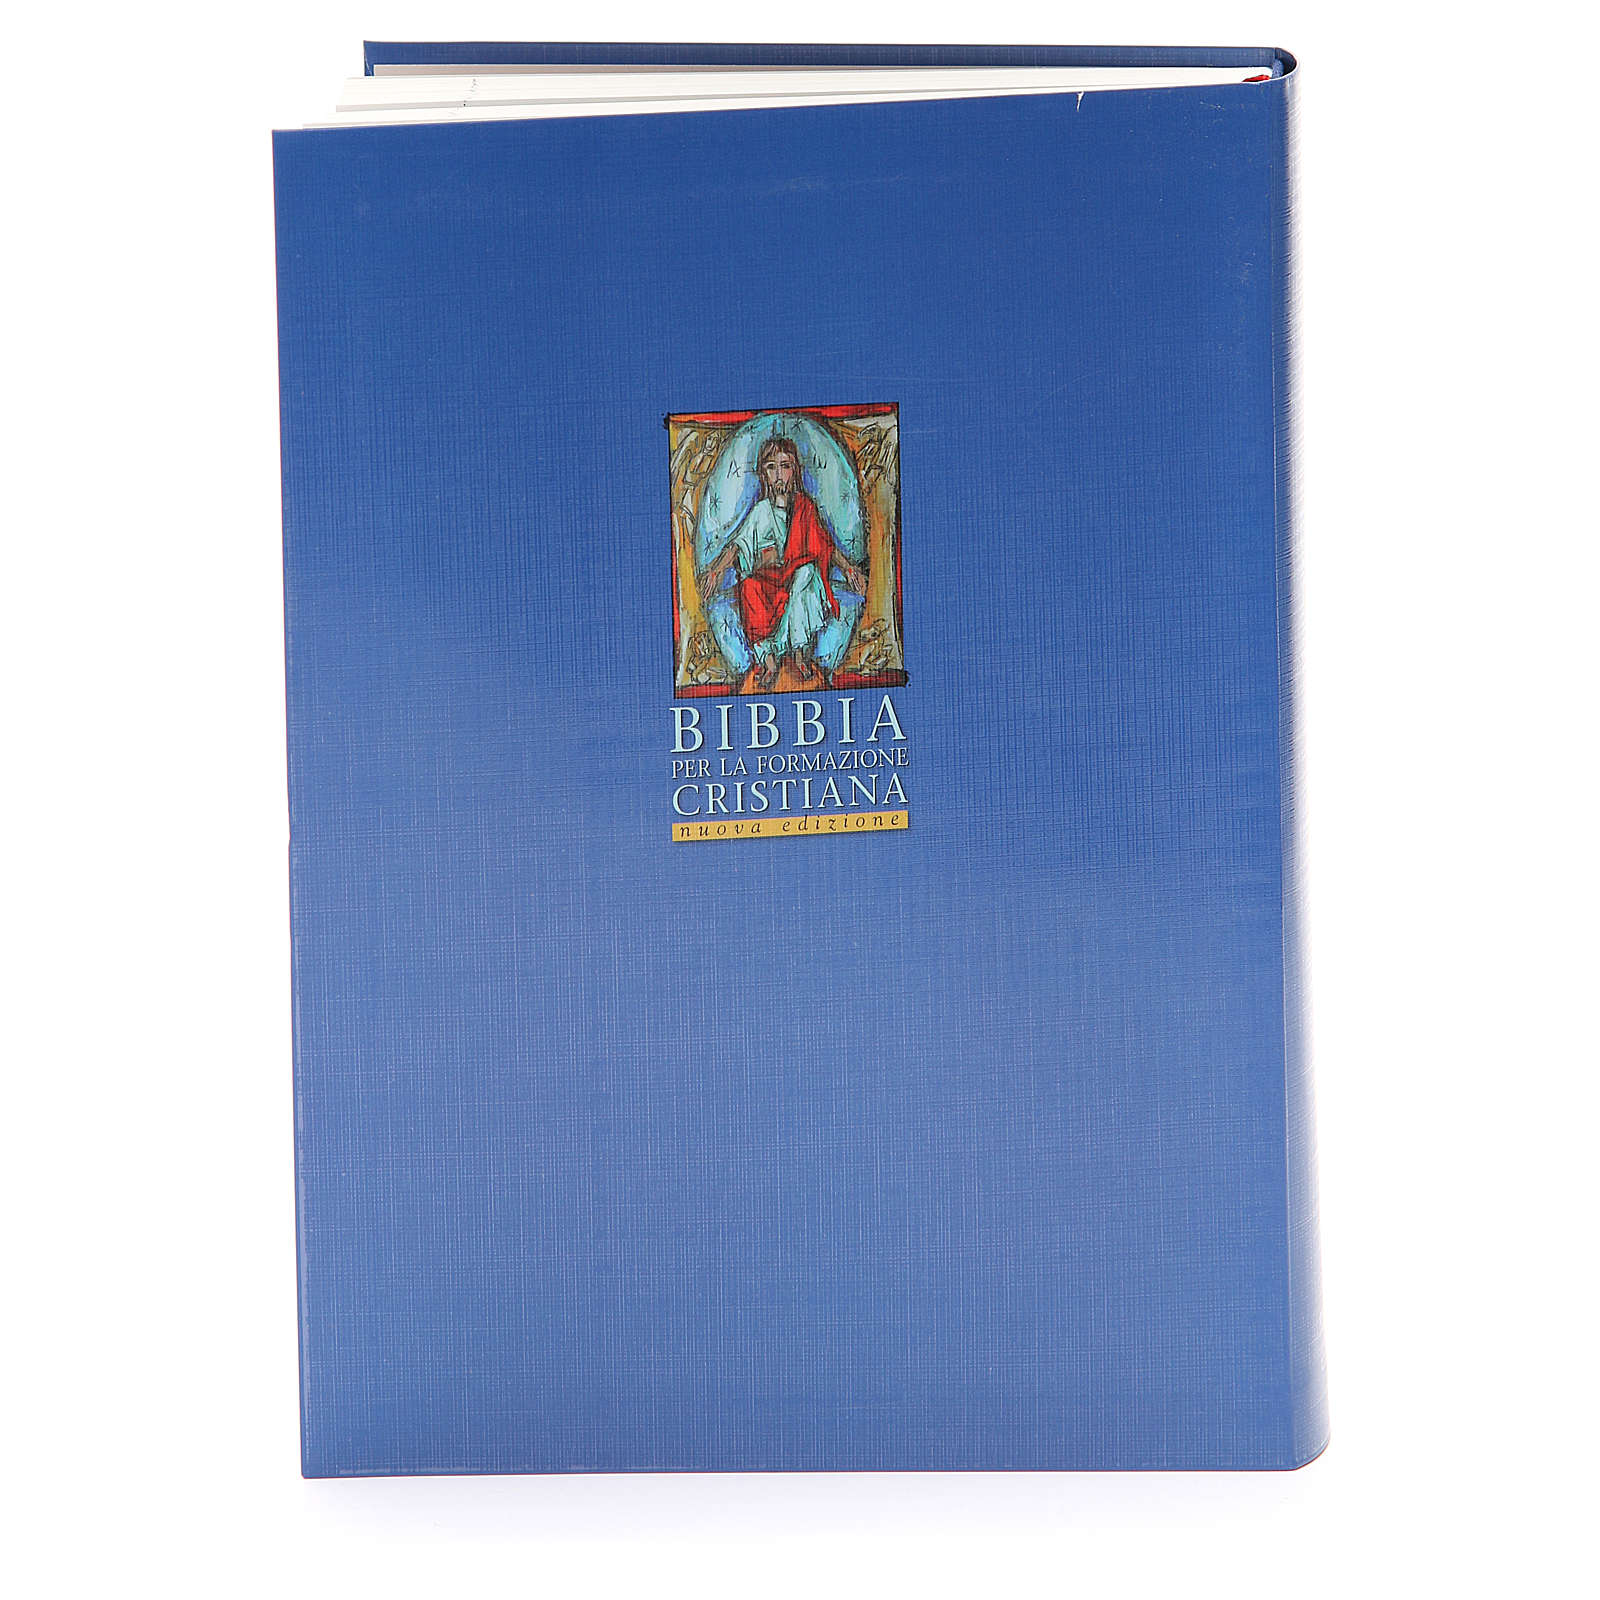 Bible for the Christian education 4